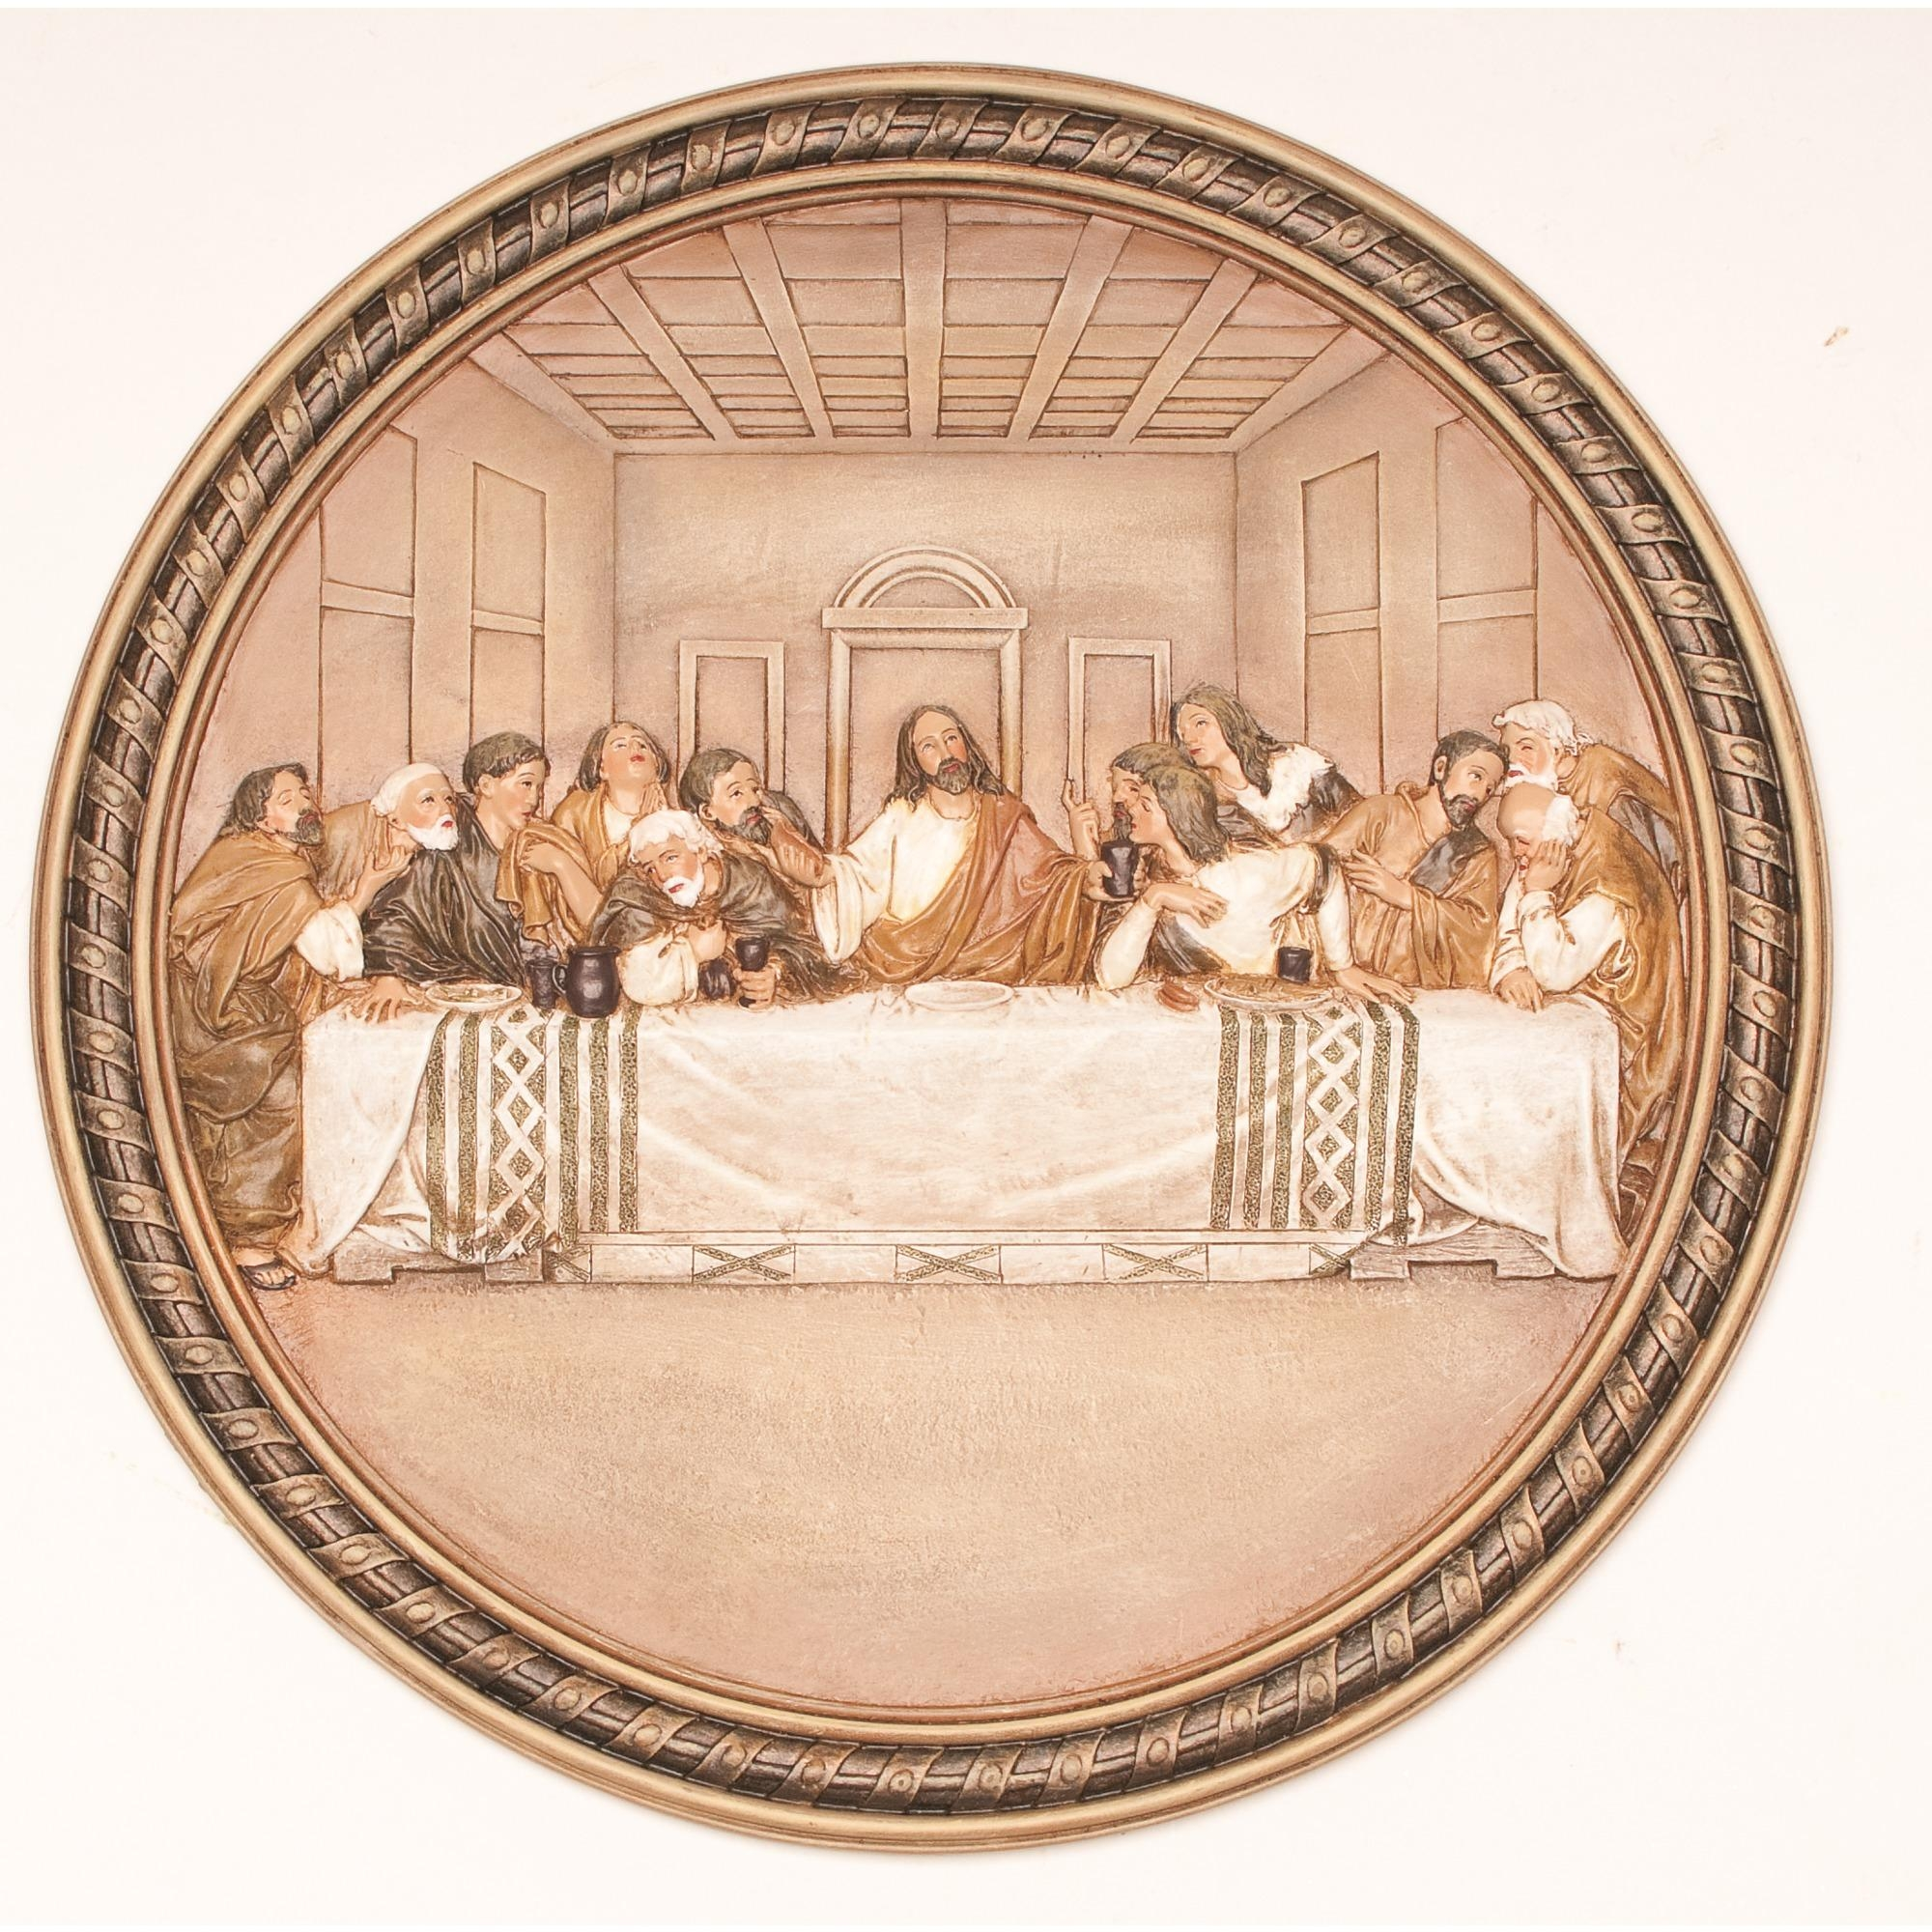 Last Supper Art: Prints, Paintings & Figures | The Catholic Company With Regard To The Last Supper Wall Art (Image 10 of 20)